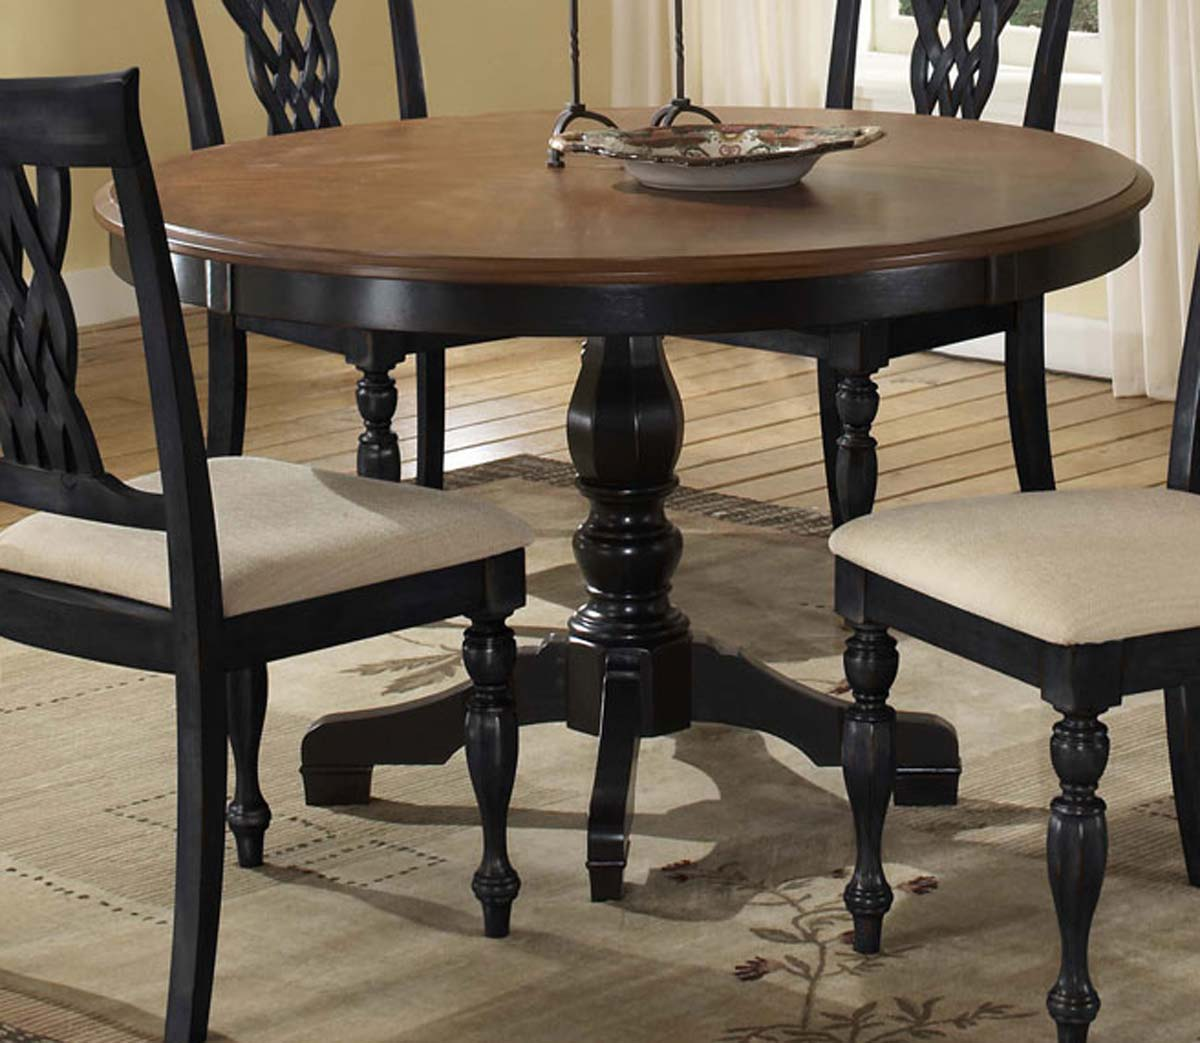 Hillsdale Embassy 5 Piece Dining Set - Rubbed Black & Cherry